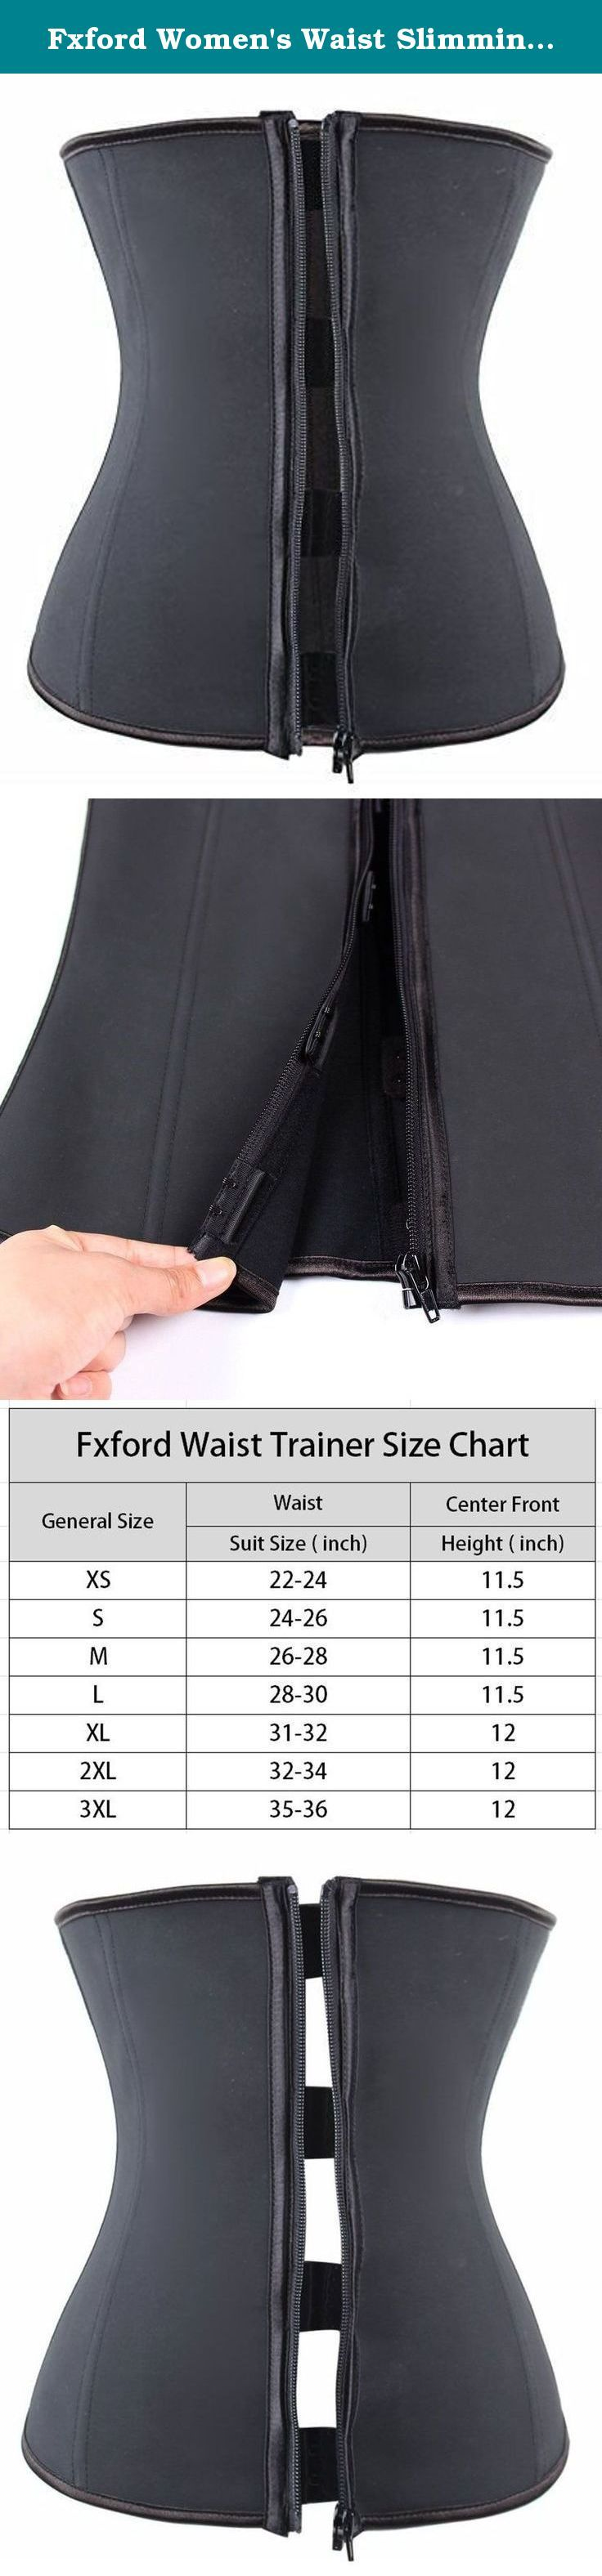 Fxford Women's Waist Slimming Latex Waist Trainer Corset Body Shapewear, FX2219 (Black, M). he Fxfort Corsets Women's Waist Cincher provides 360 degrees of shaping thoughout the mid section and back and it enhances your figure while helping your posture and giving you a beautiful silhouette.It works great with wedding gowns, dresses or casual outfits. Have the perfect outfit to wear but you need to smooth out your tummy? No worries. Just put on our waist cincher for a smoother, sleeker…